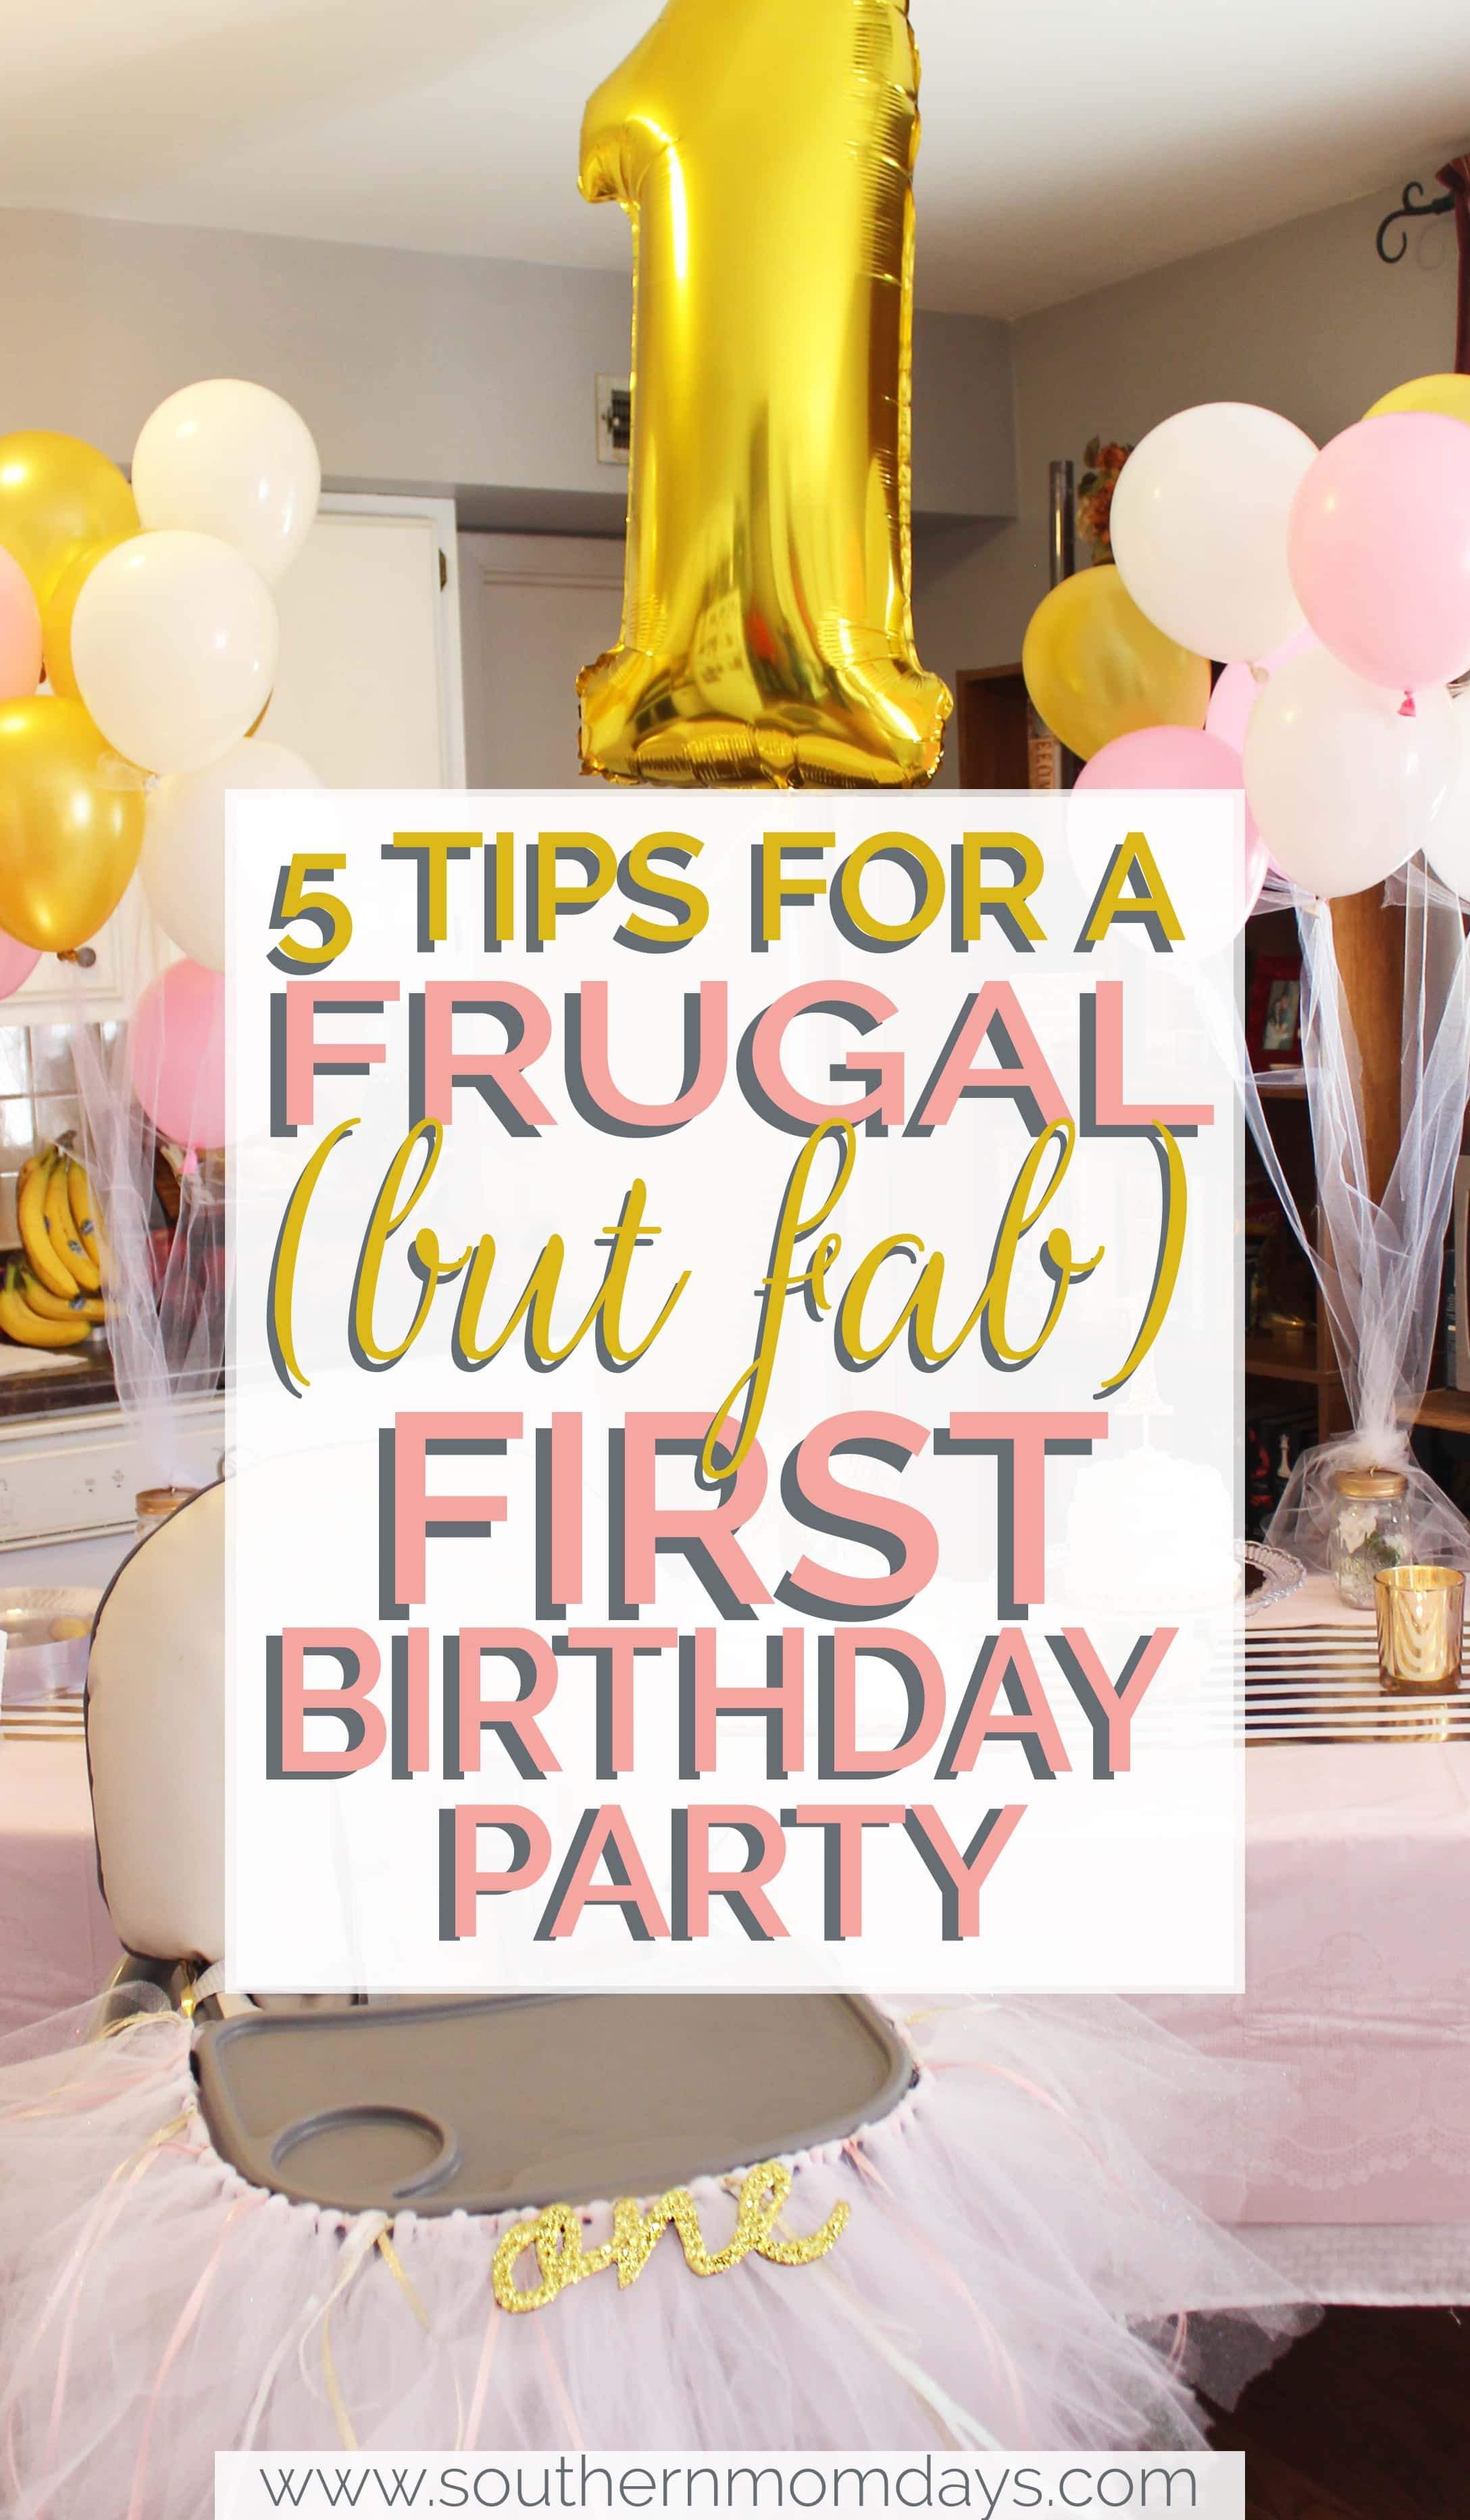 5 Tips for a Frugal (but Fab) First Birthday Party